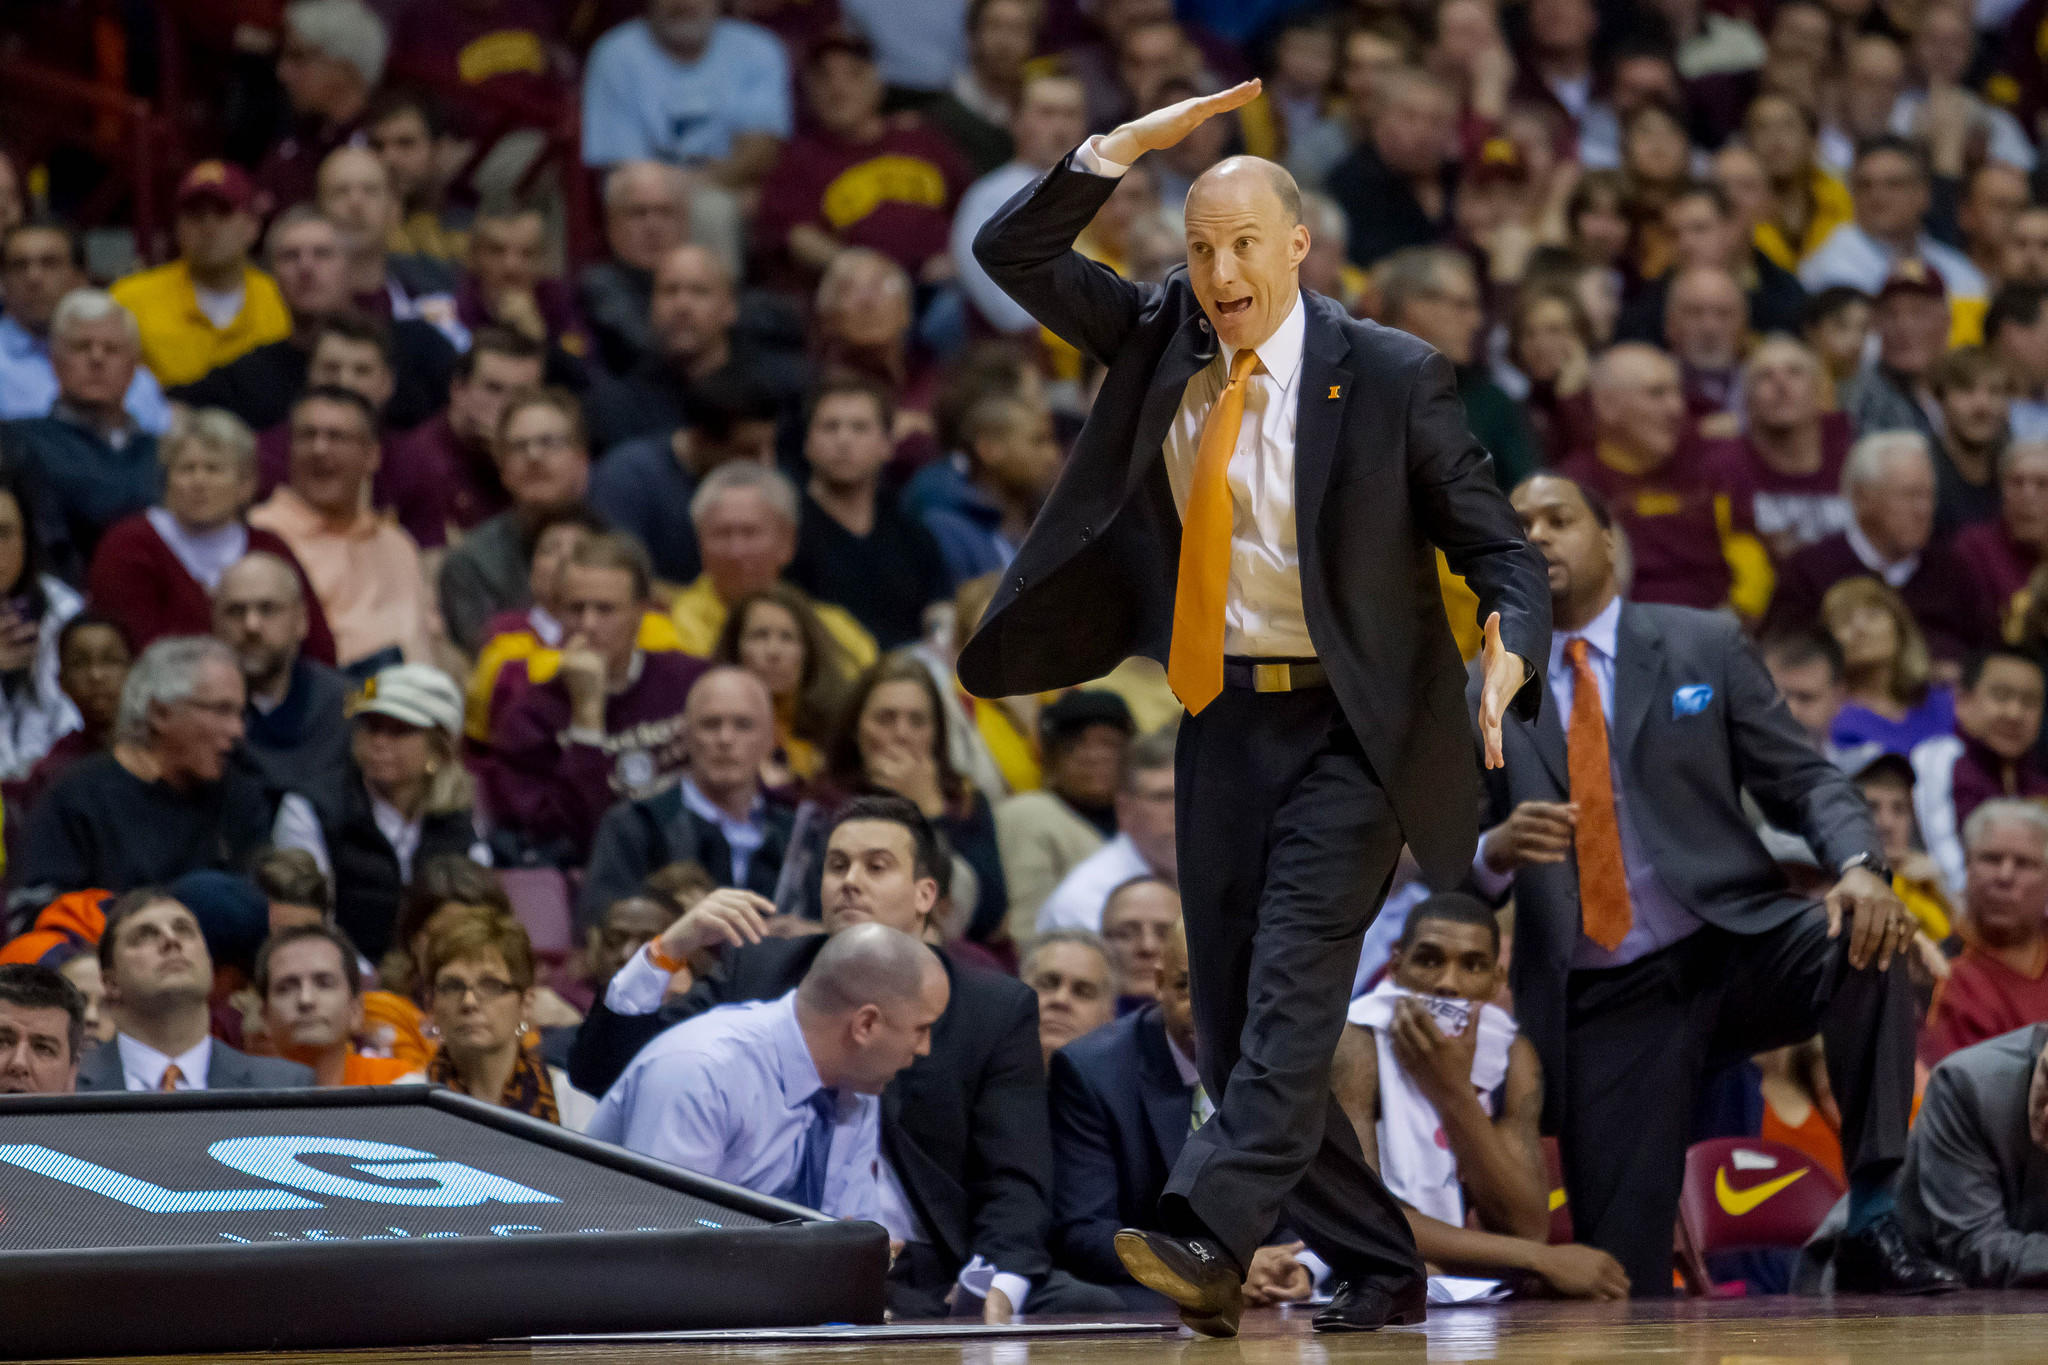 Illini coach John Groce in the second half against Minnesota Gophers at Williams Arena. Illinois won 62-49.